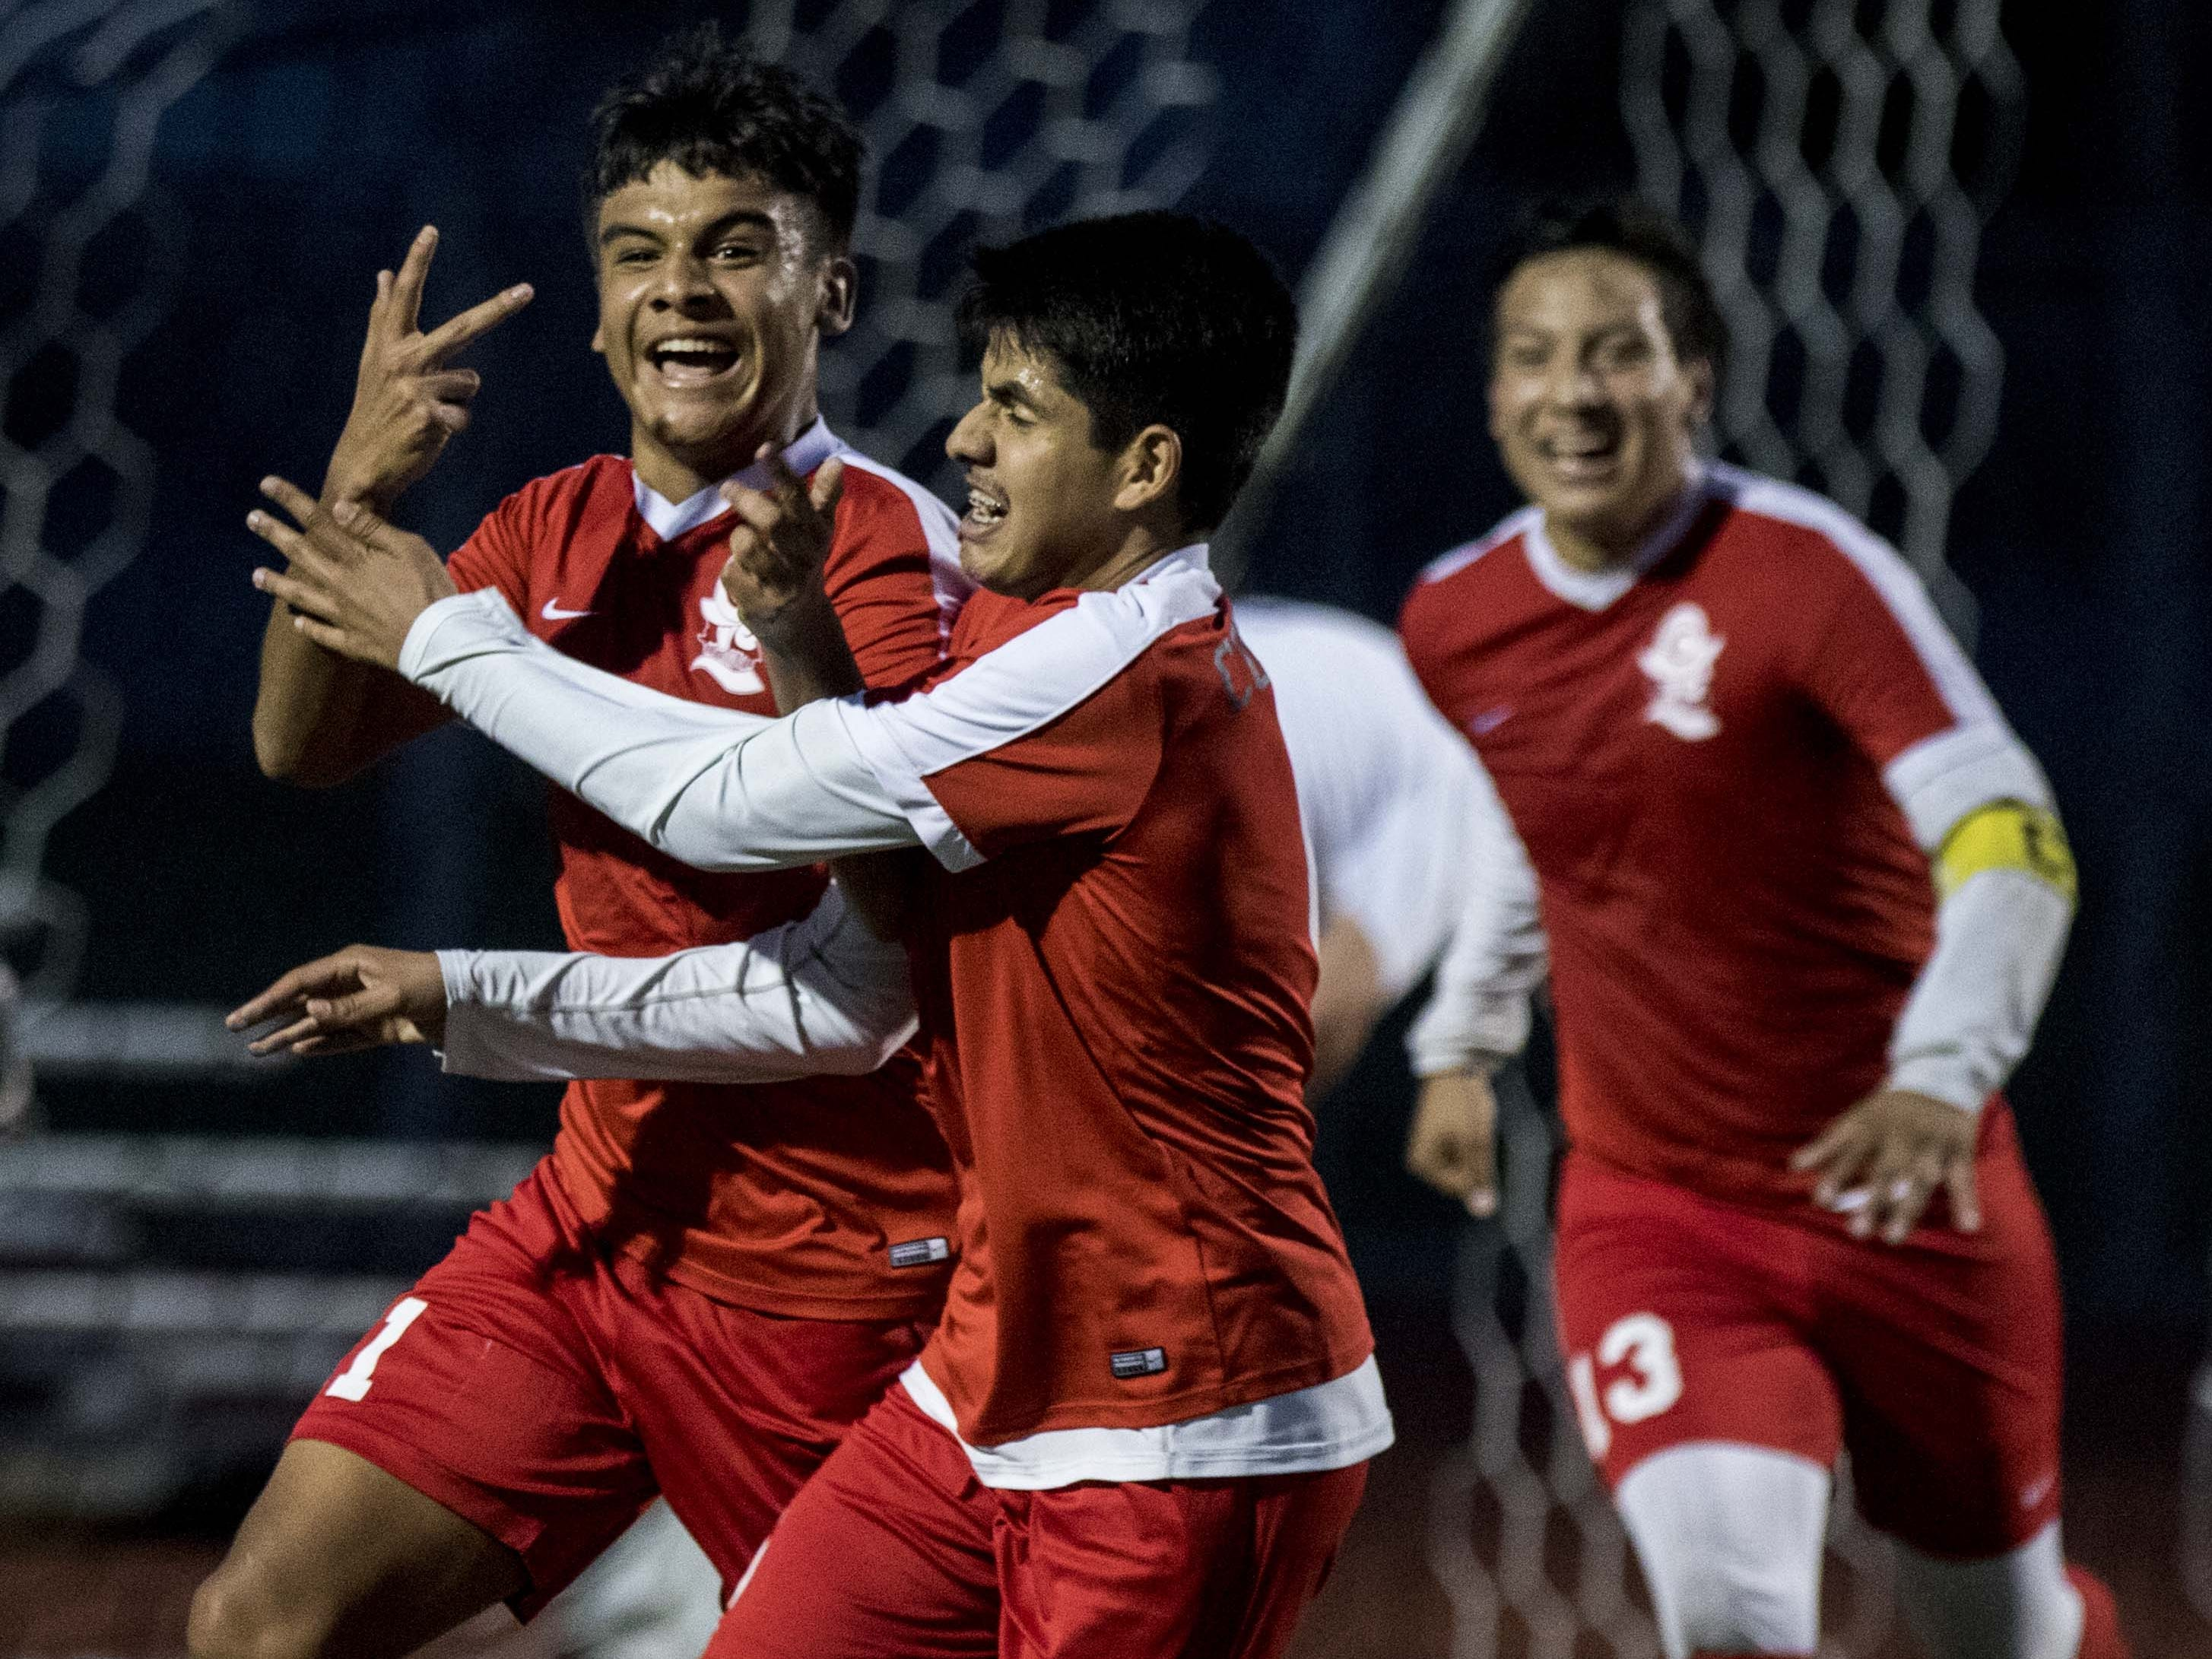 Coronado's Carlos Mendoza (11) celebrates his goal with Yohan Palafox (6) during their game with Northwest Christian's during the 3A State Championship game in Chandler, Friday, Feb .15,  2019.